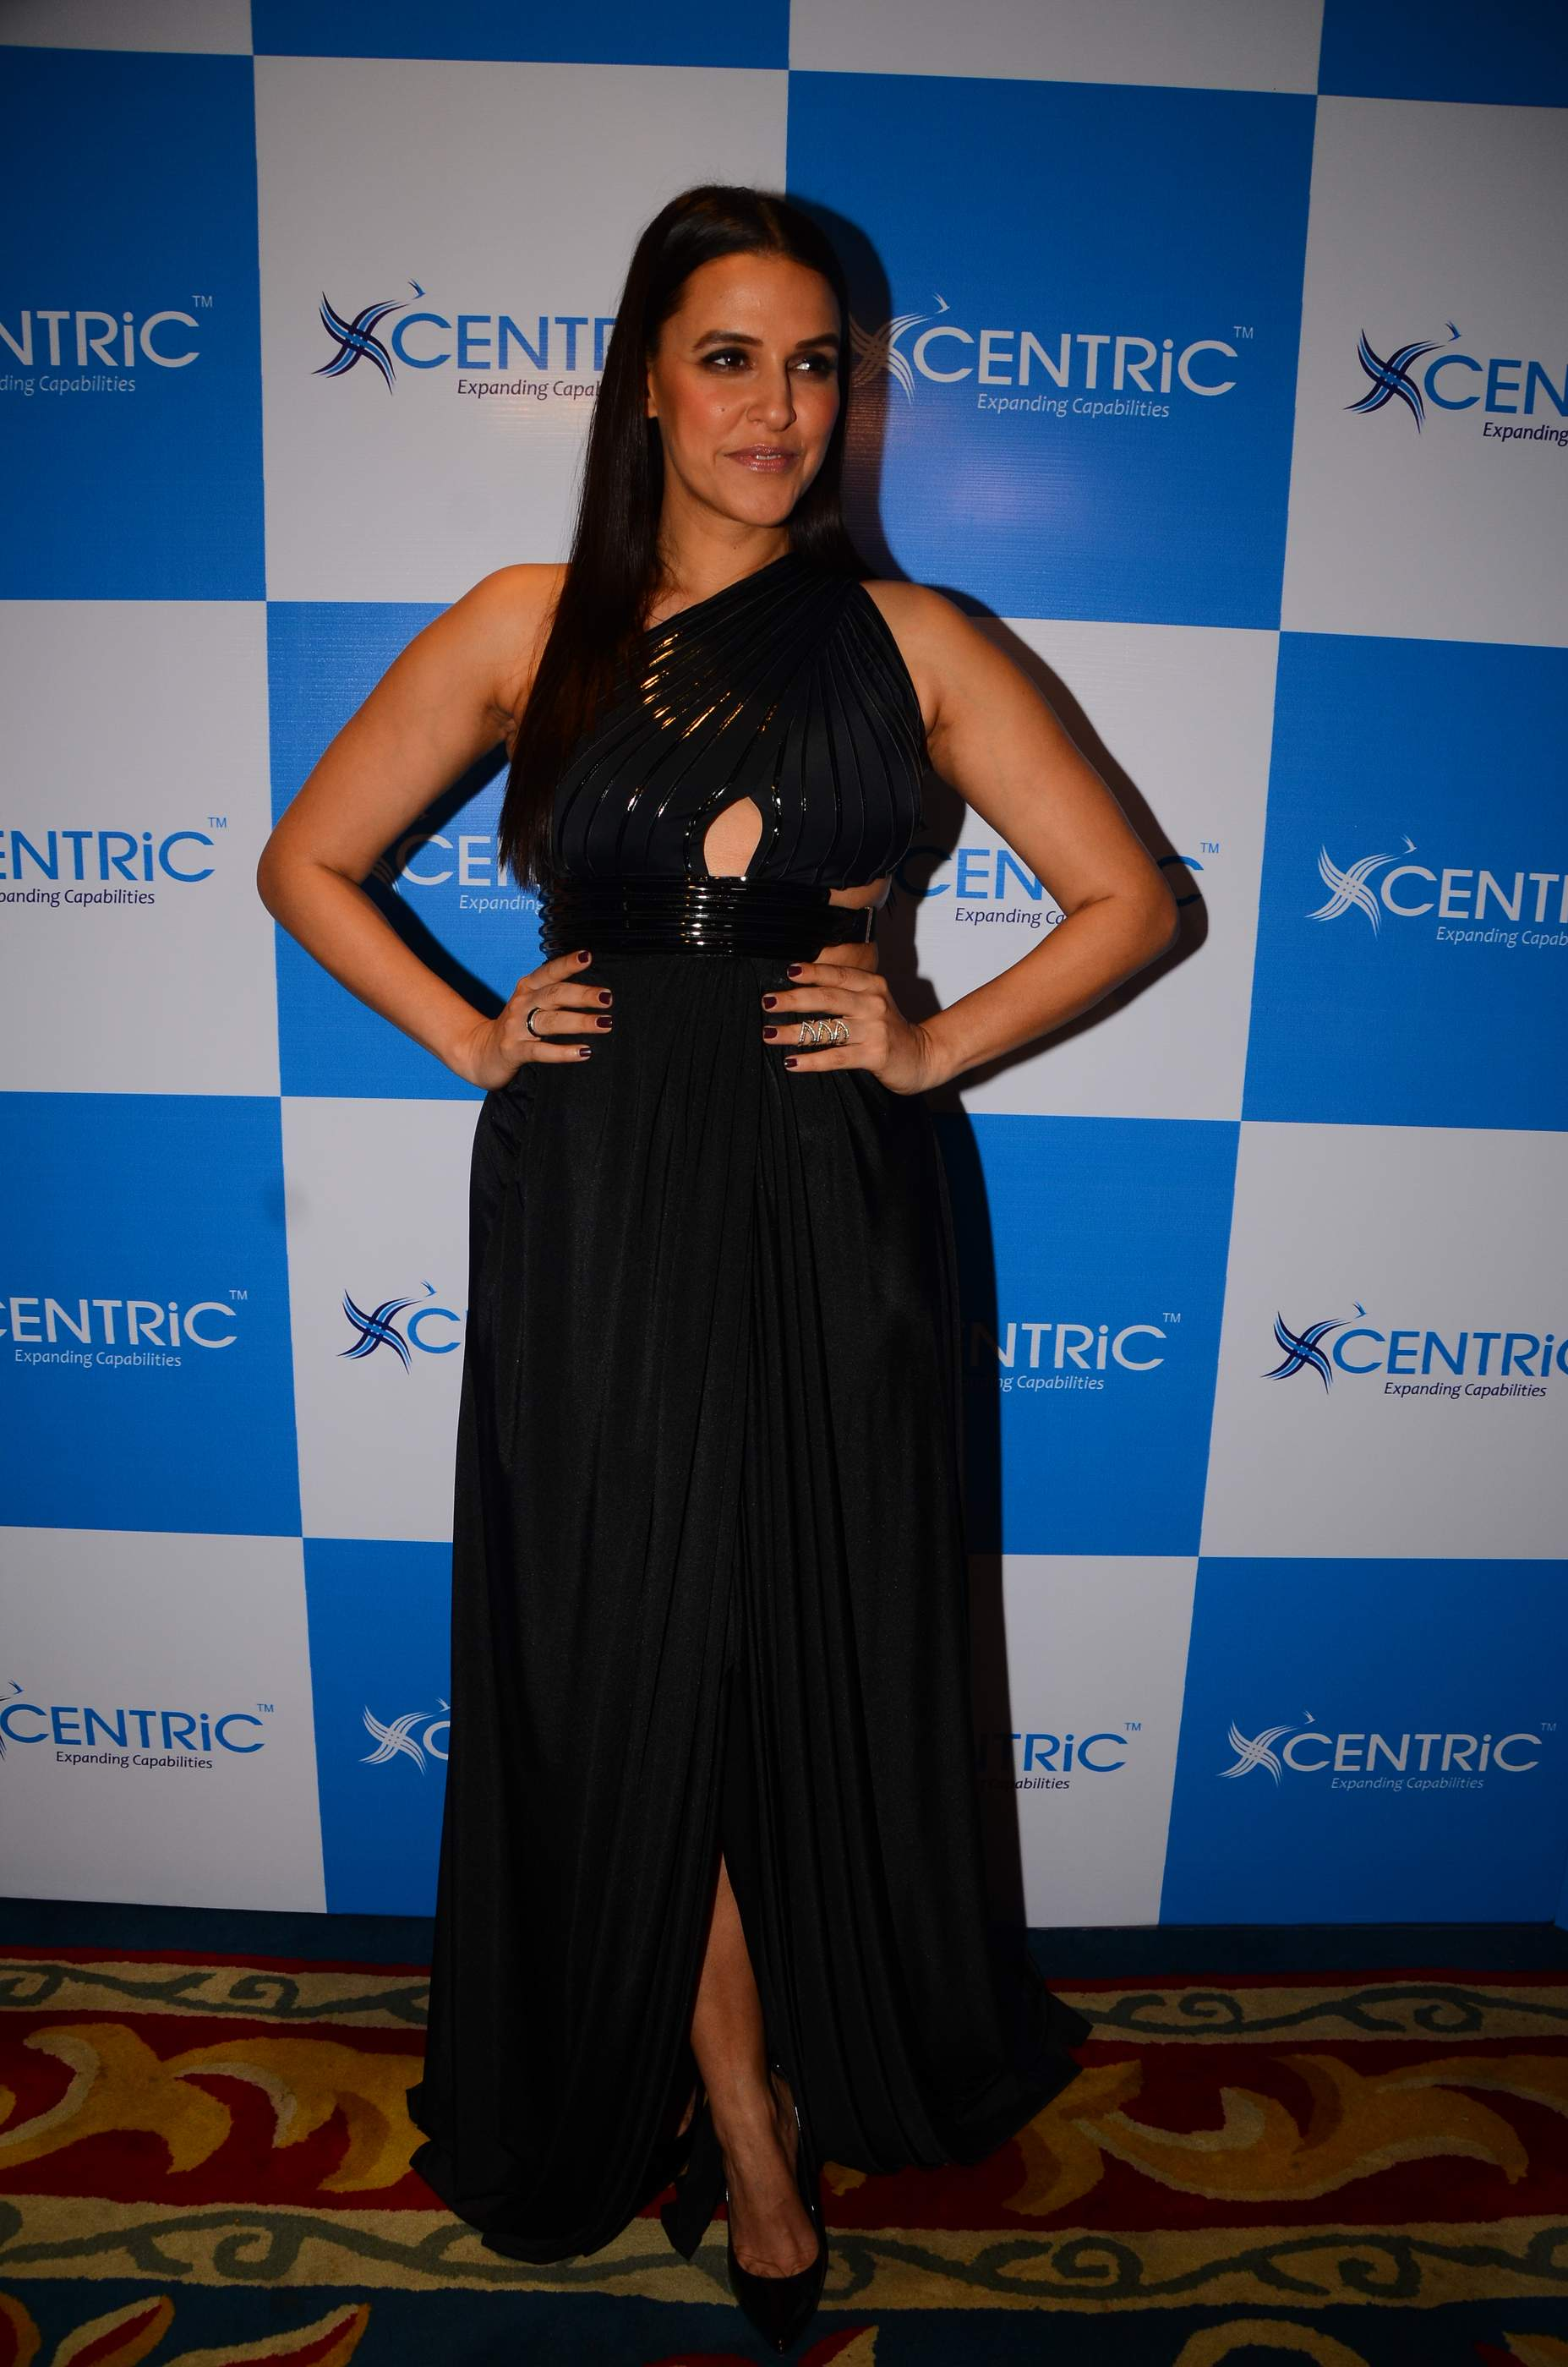 HOT Photo Stills Of Beauty Queen Neha Dhupia | Xcentric HOT Photo Stills Of Beauty Queen Neha Dhupia | Xcentric Neha Dhupia Xcentric 21